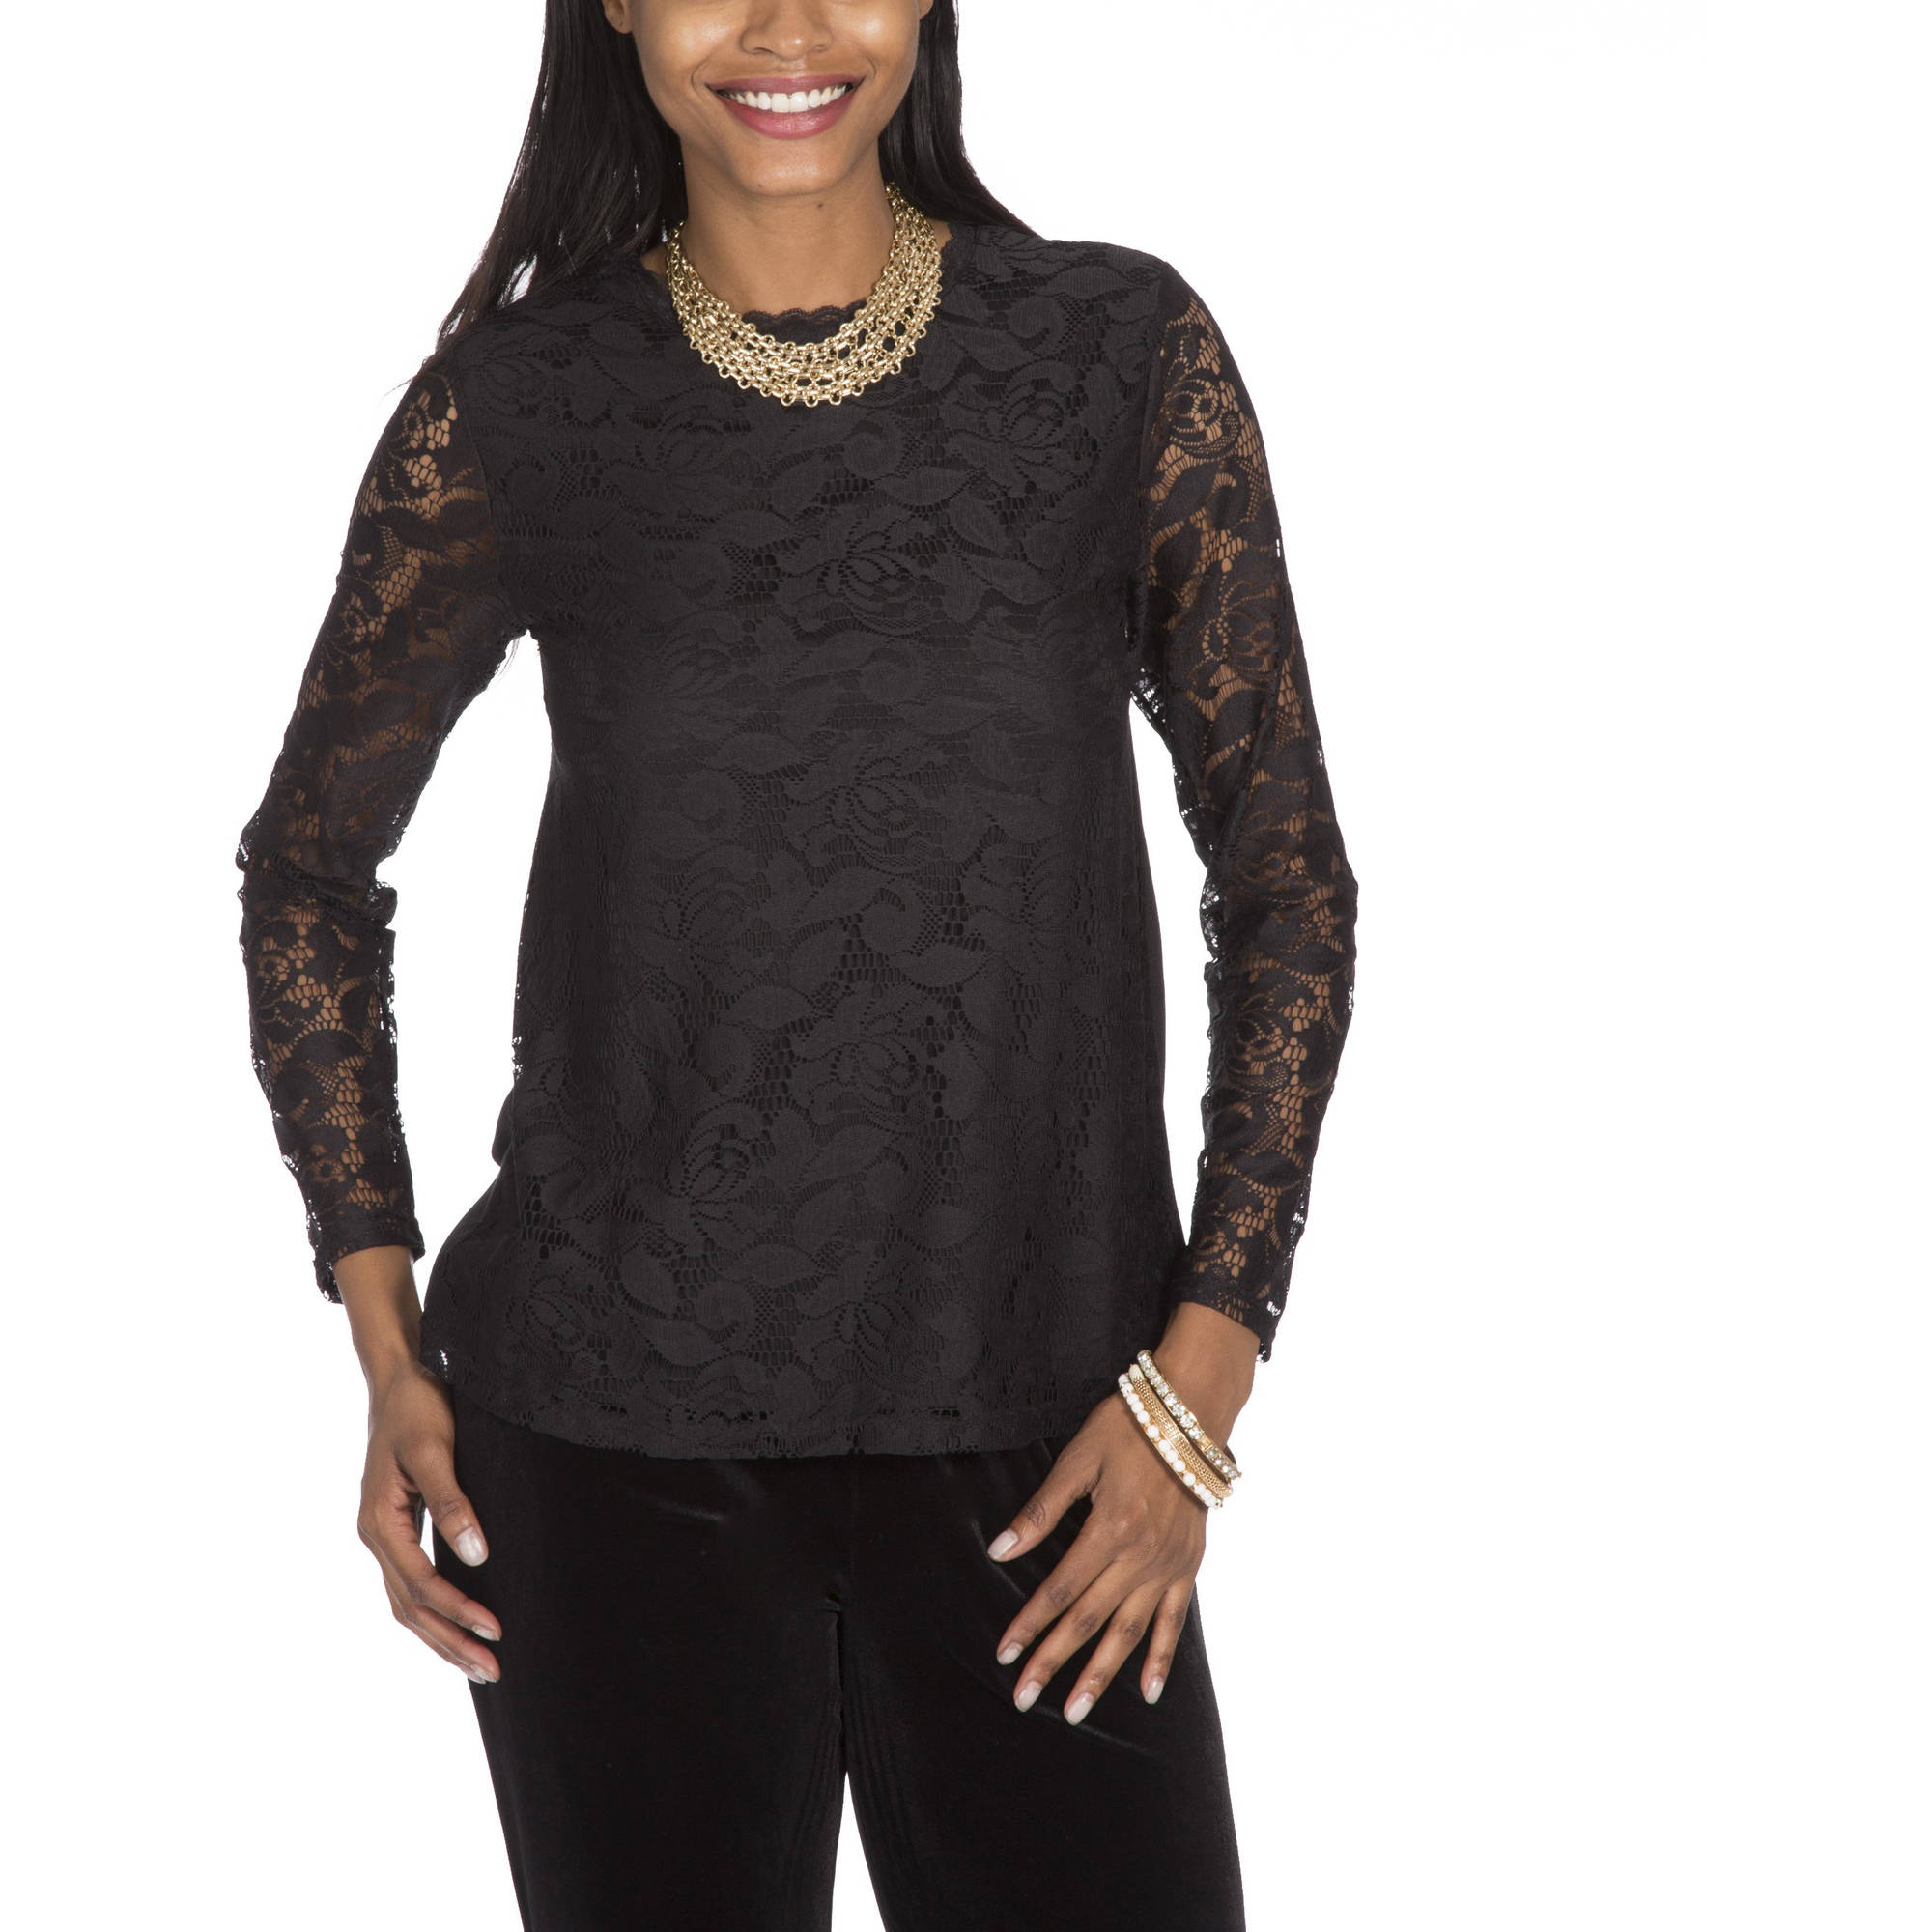 Moda Women's long sleeve lace front top